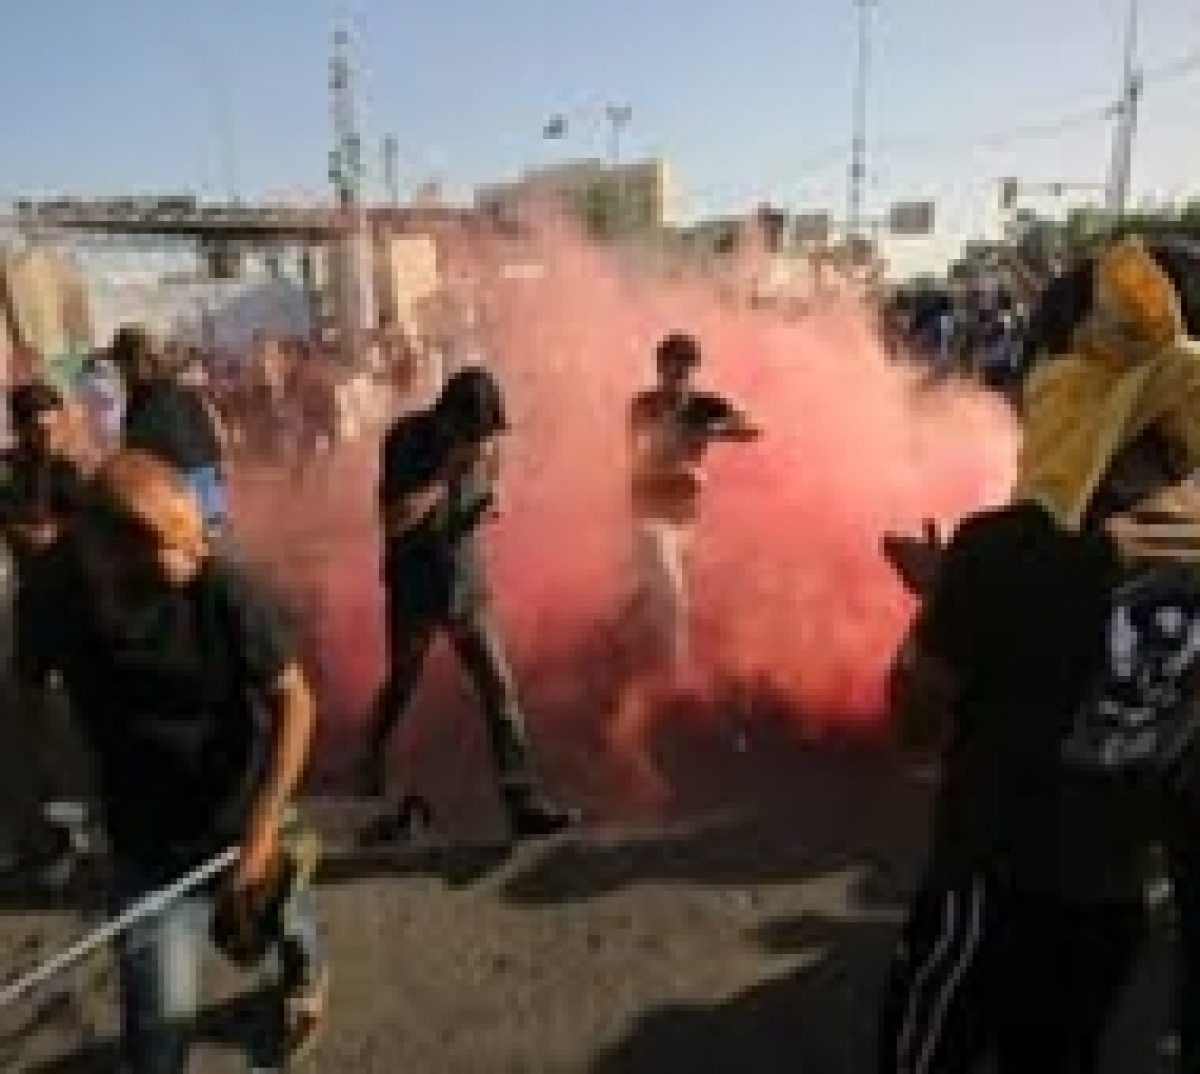 Iraq forces killed at least 2 protesters in Baghdad officials